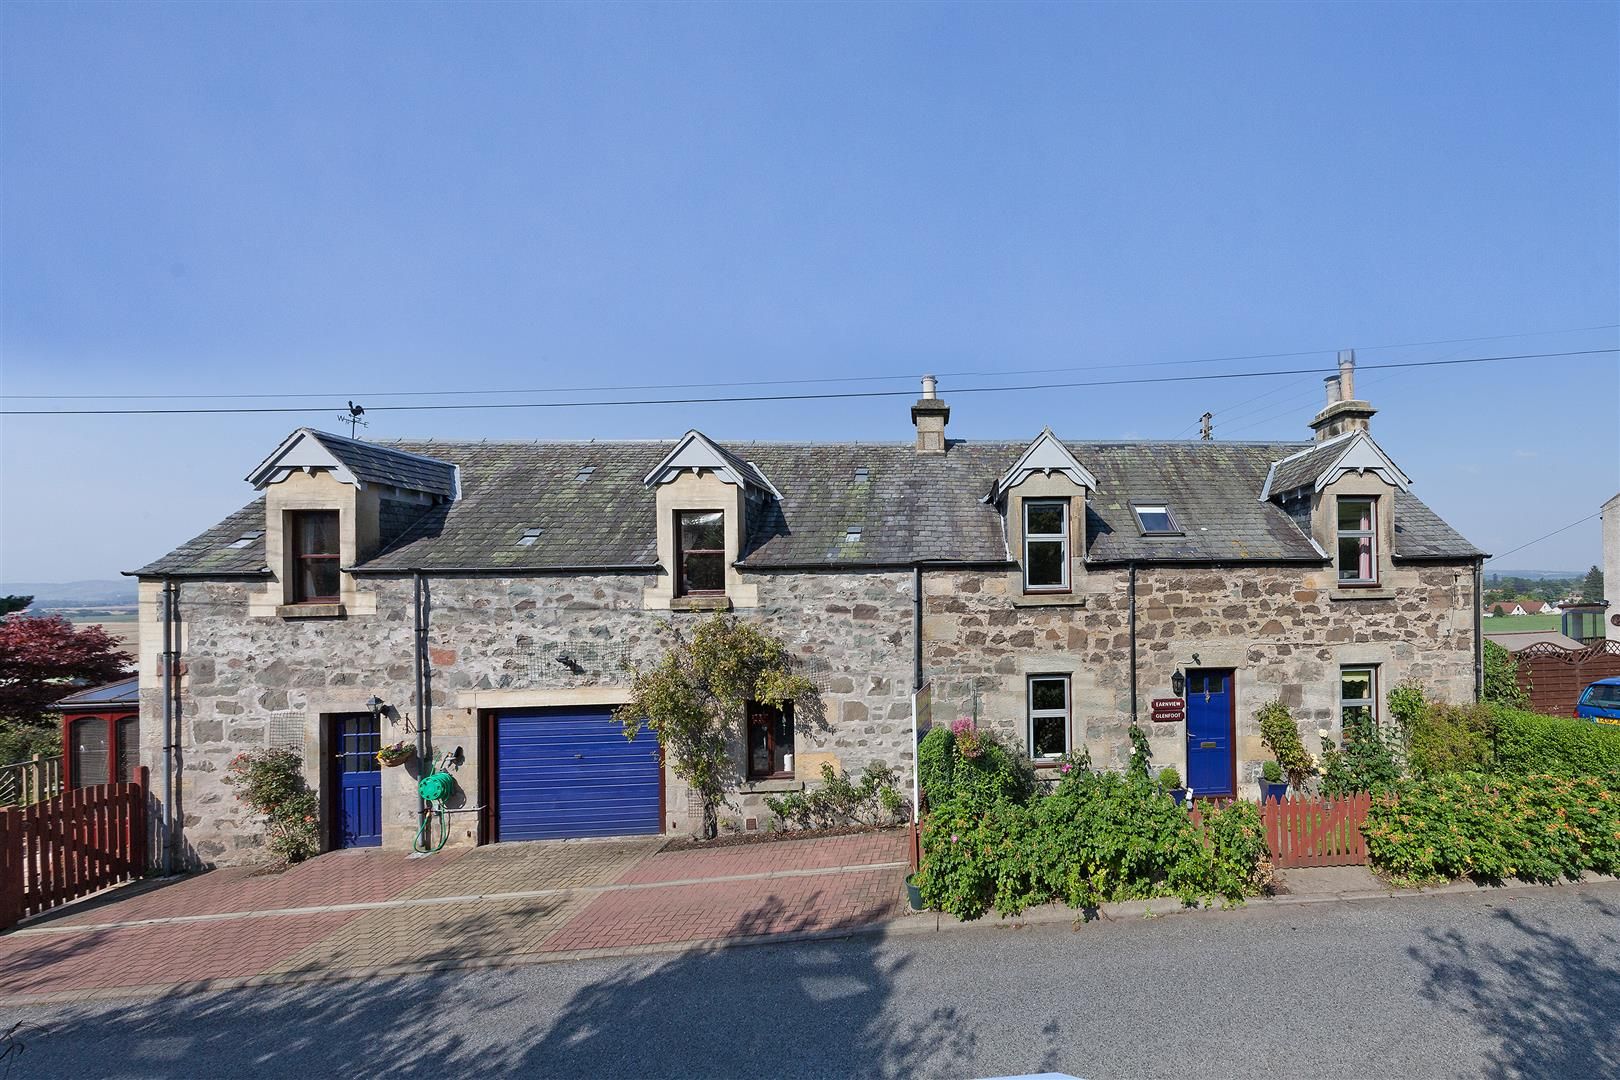 Earnview Cottage,Glenfoot, Abernethy, Perthshire, PH2 9LS, UK